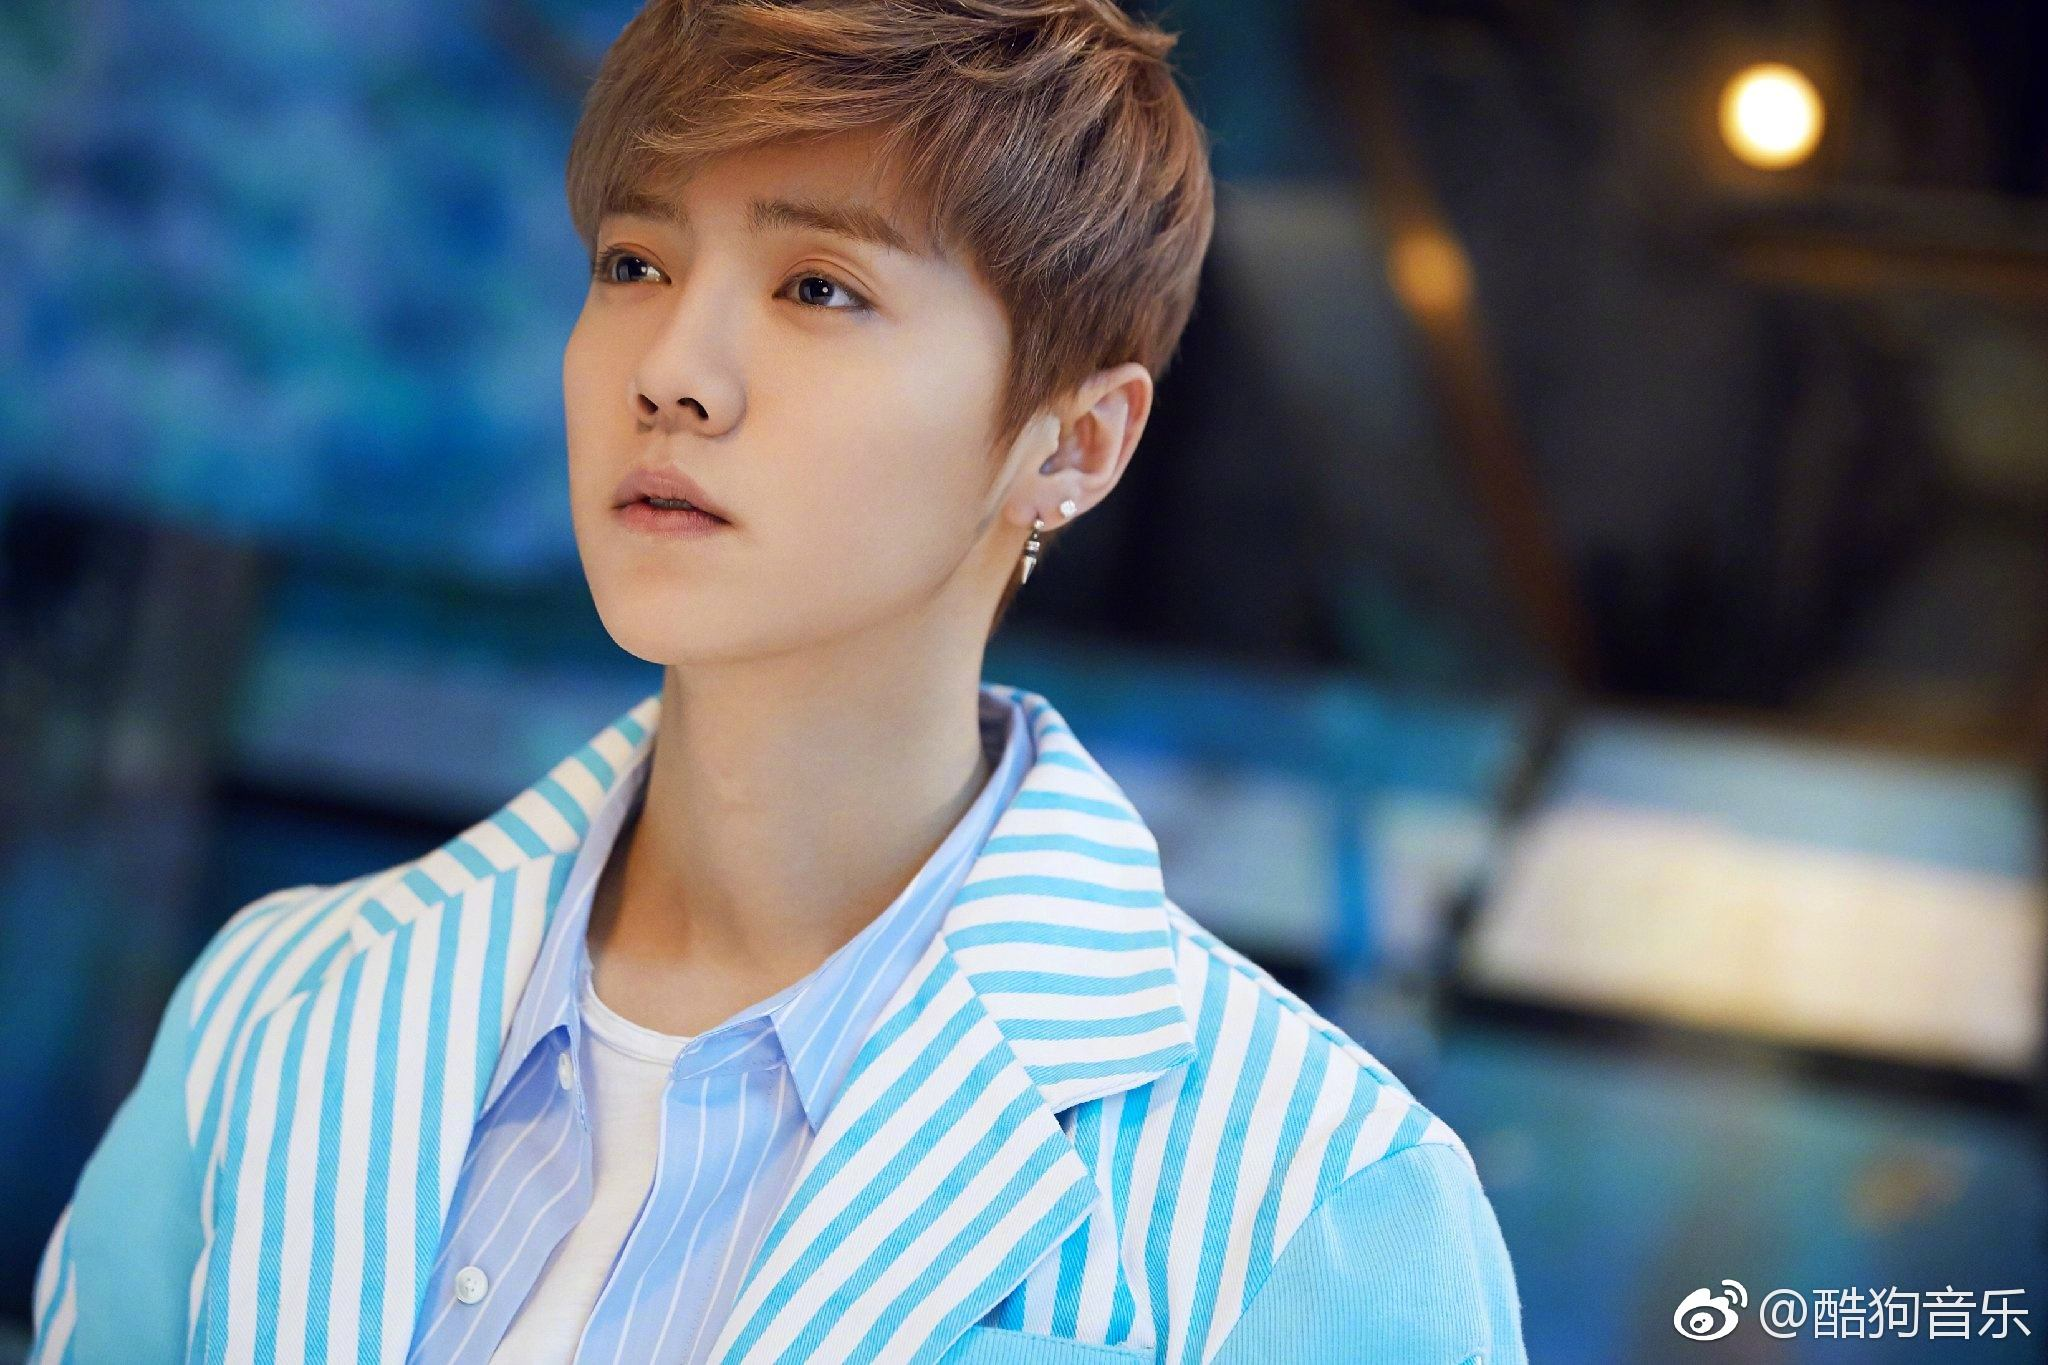 Chinese paparazzi spread malicious rumors about Luhan